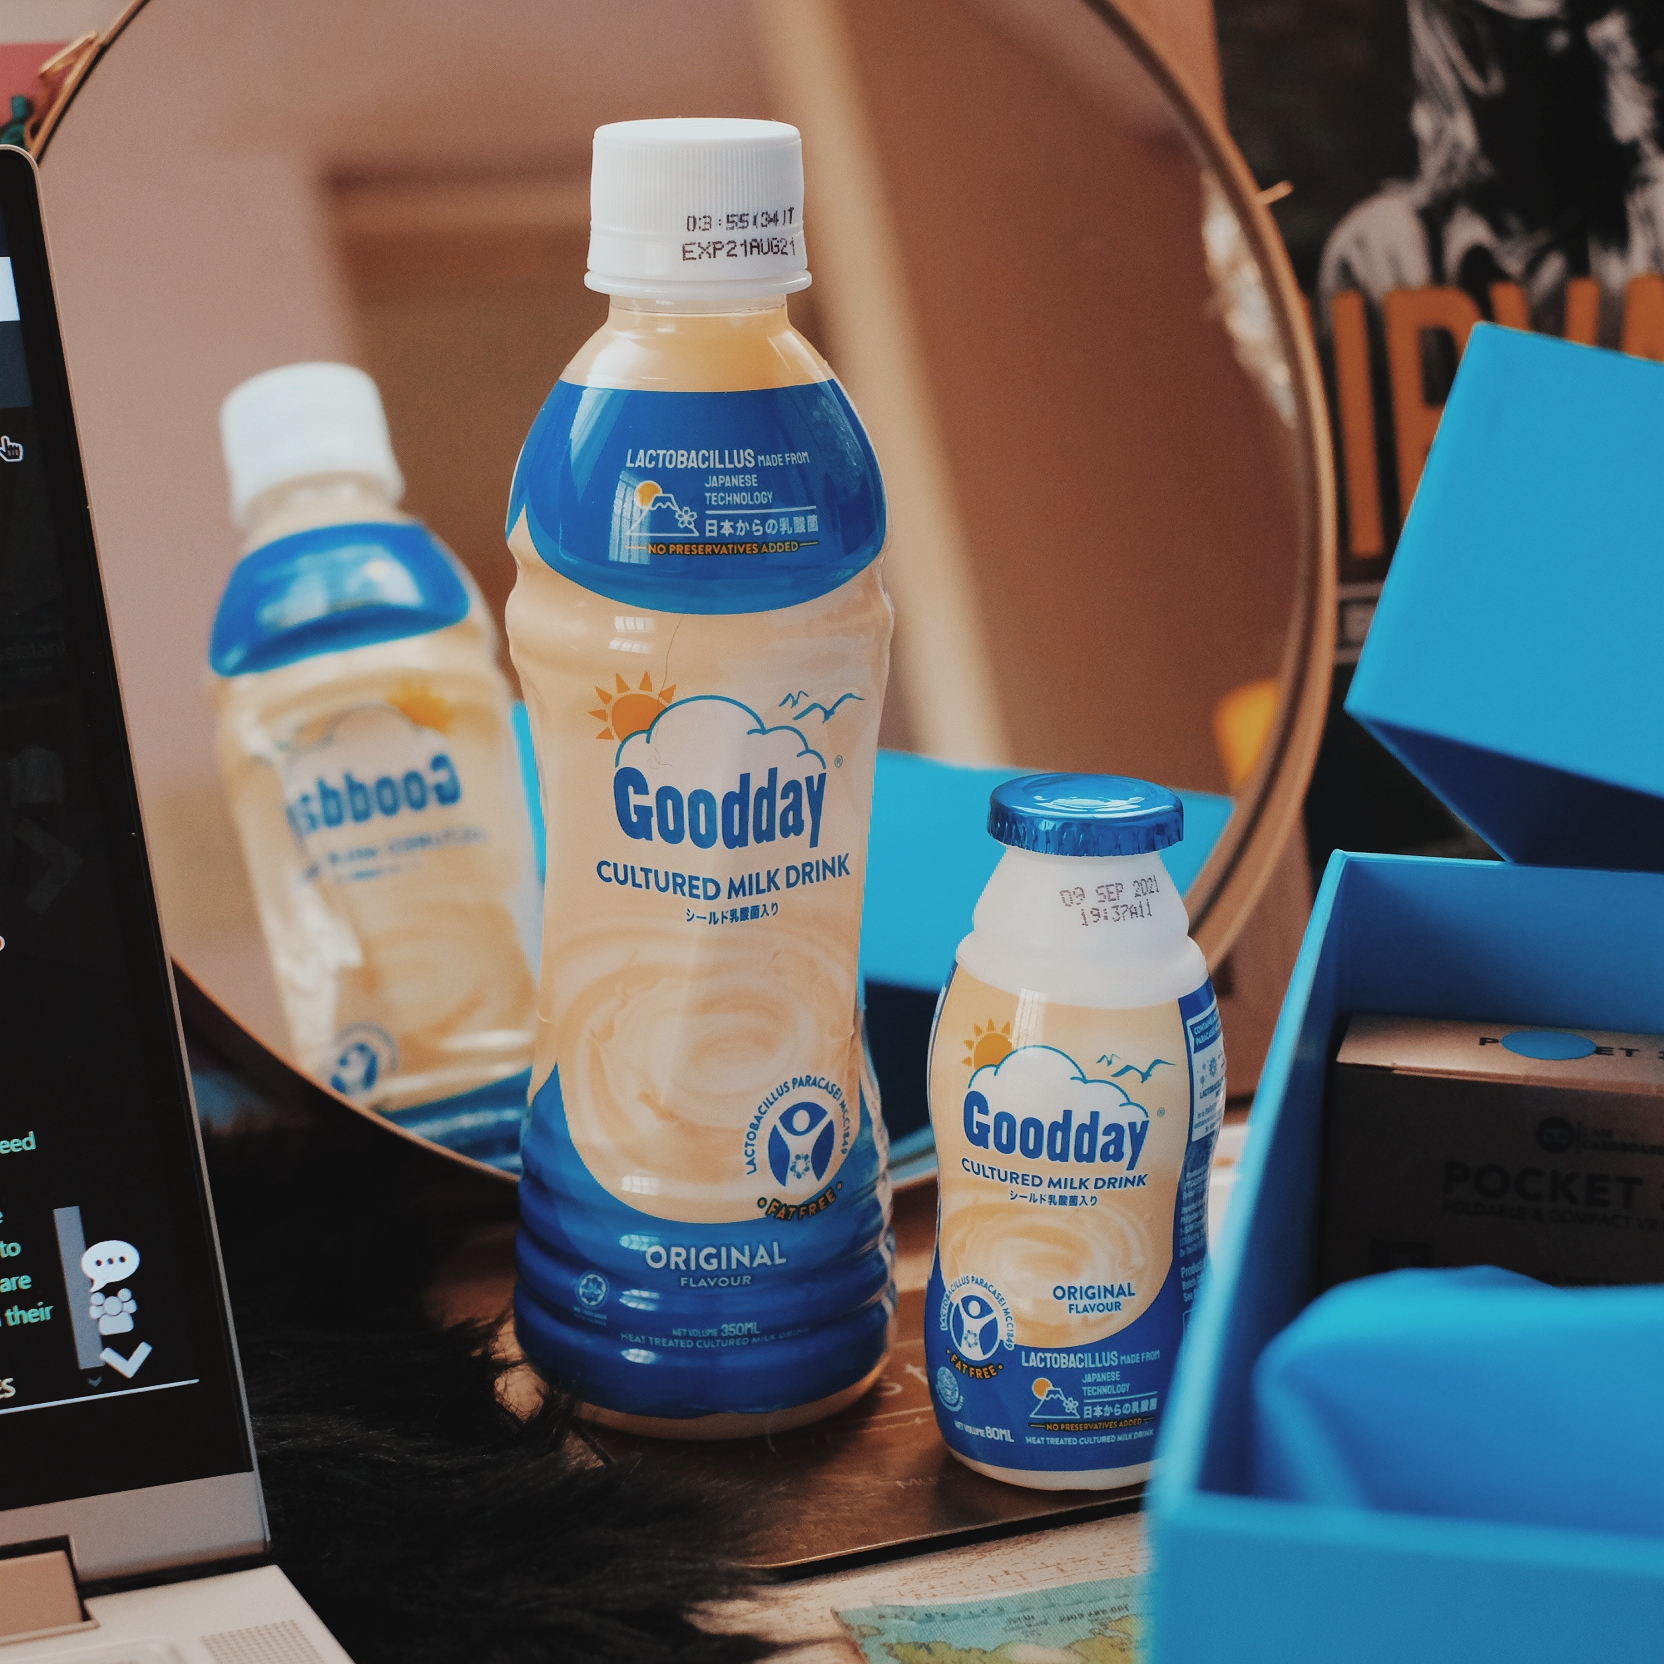 Goodday Milk Now in the Philippines